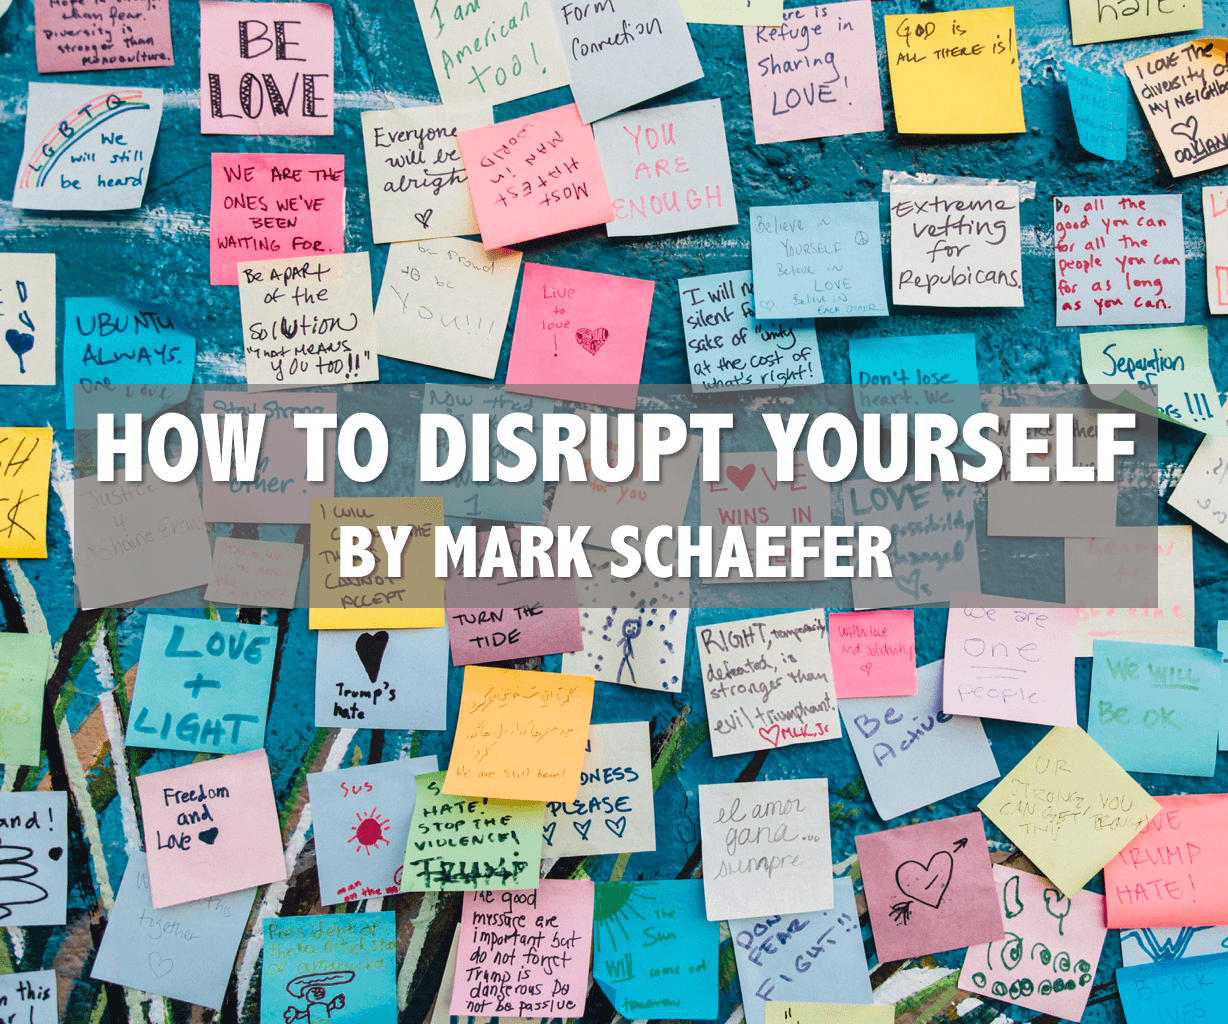 Five Ways to Disrupt Yourself: The Fight for Relevance